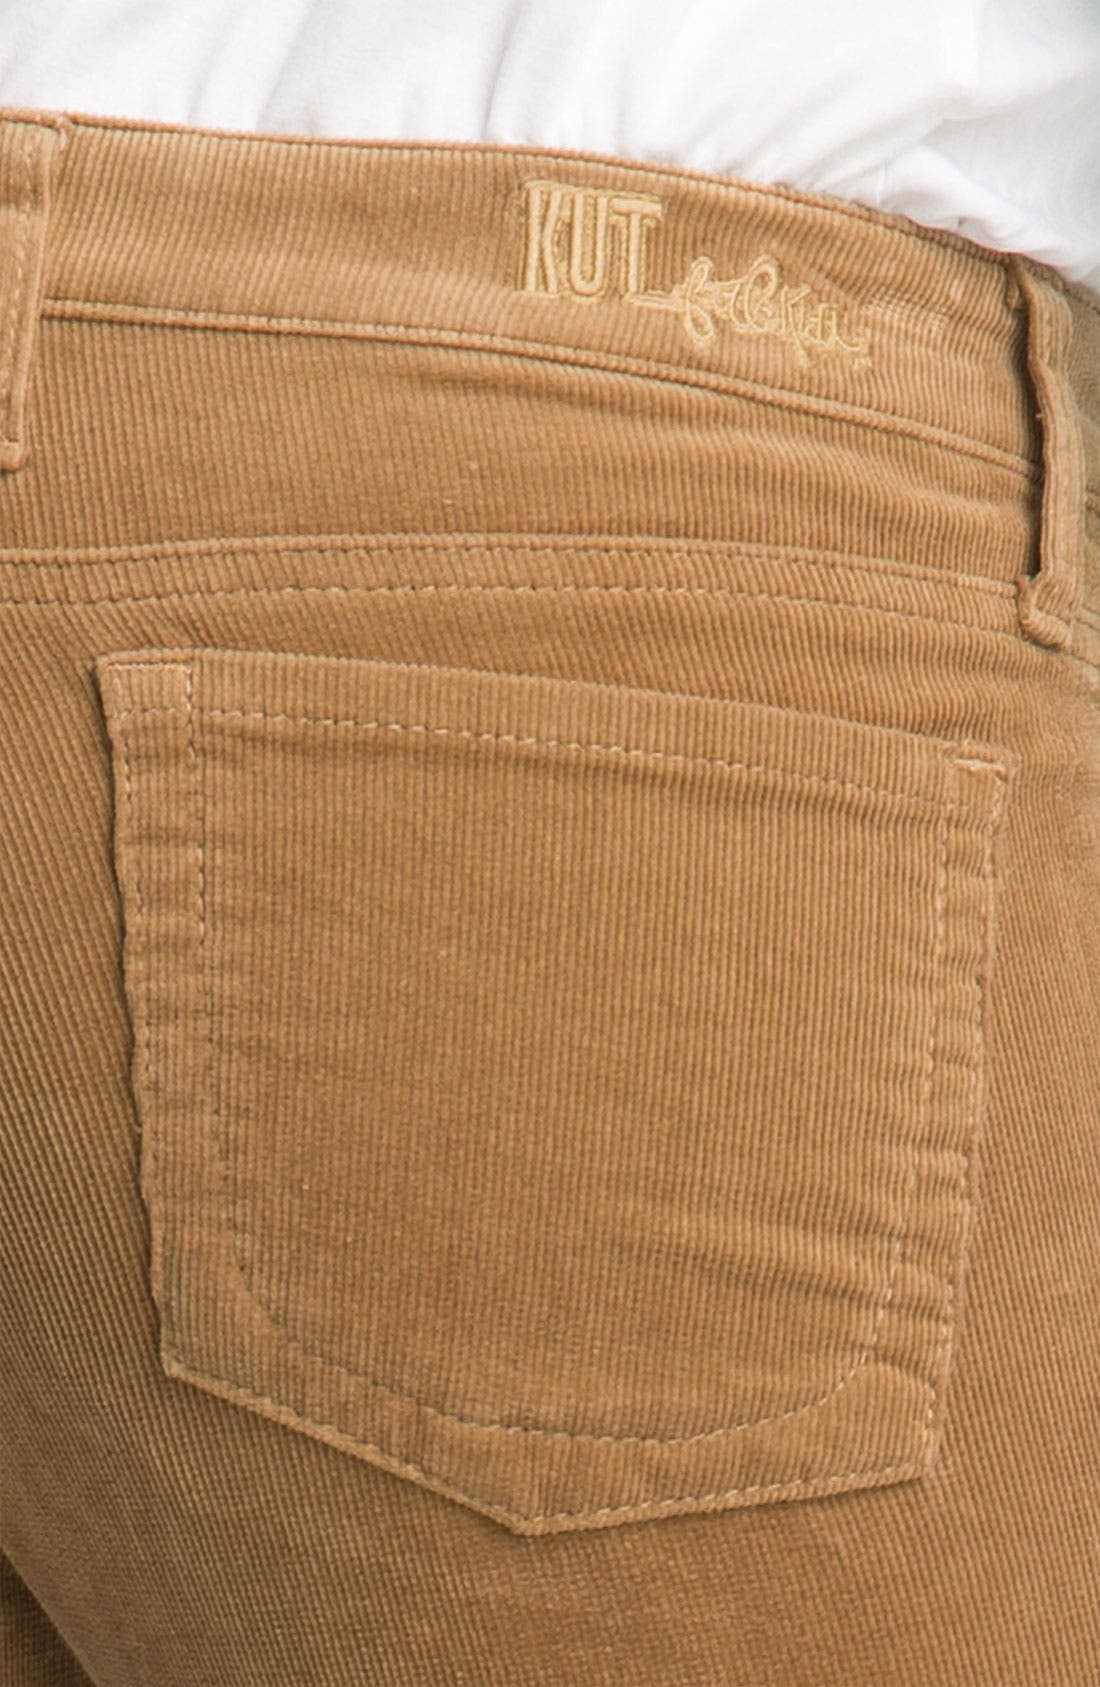 Baby Bootcut Corduroy Jeans,                             Alternate thumbnail 39, color,